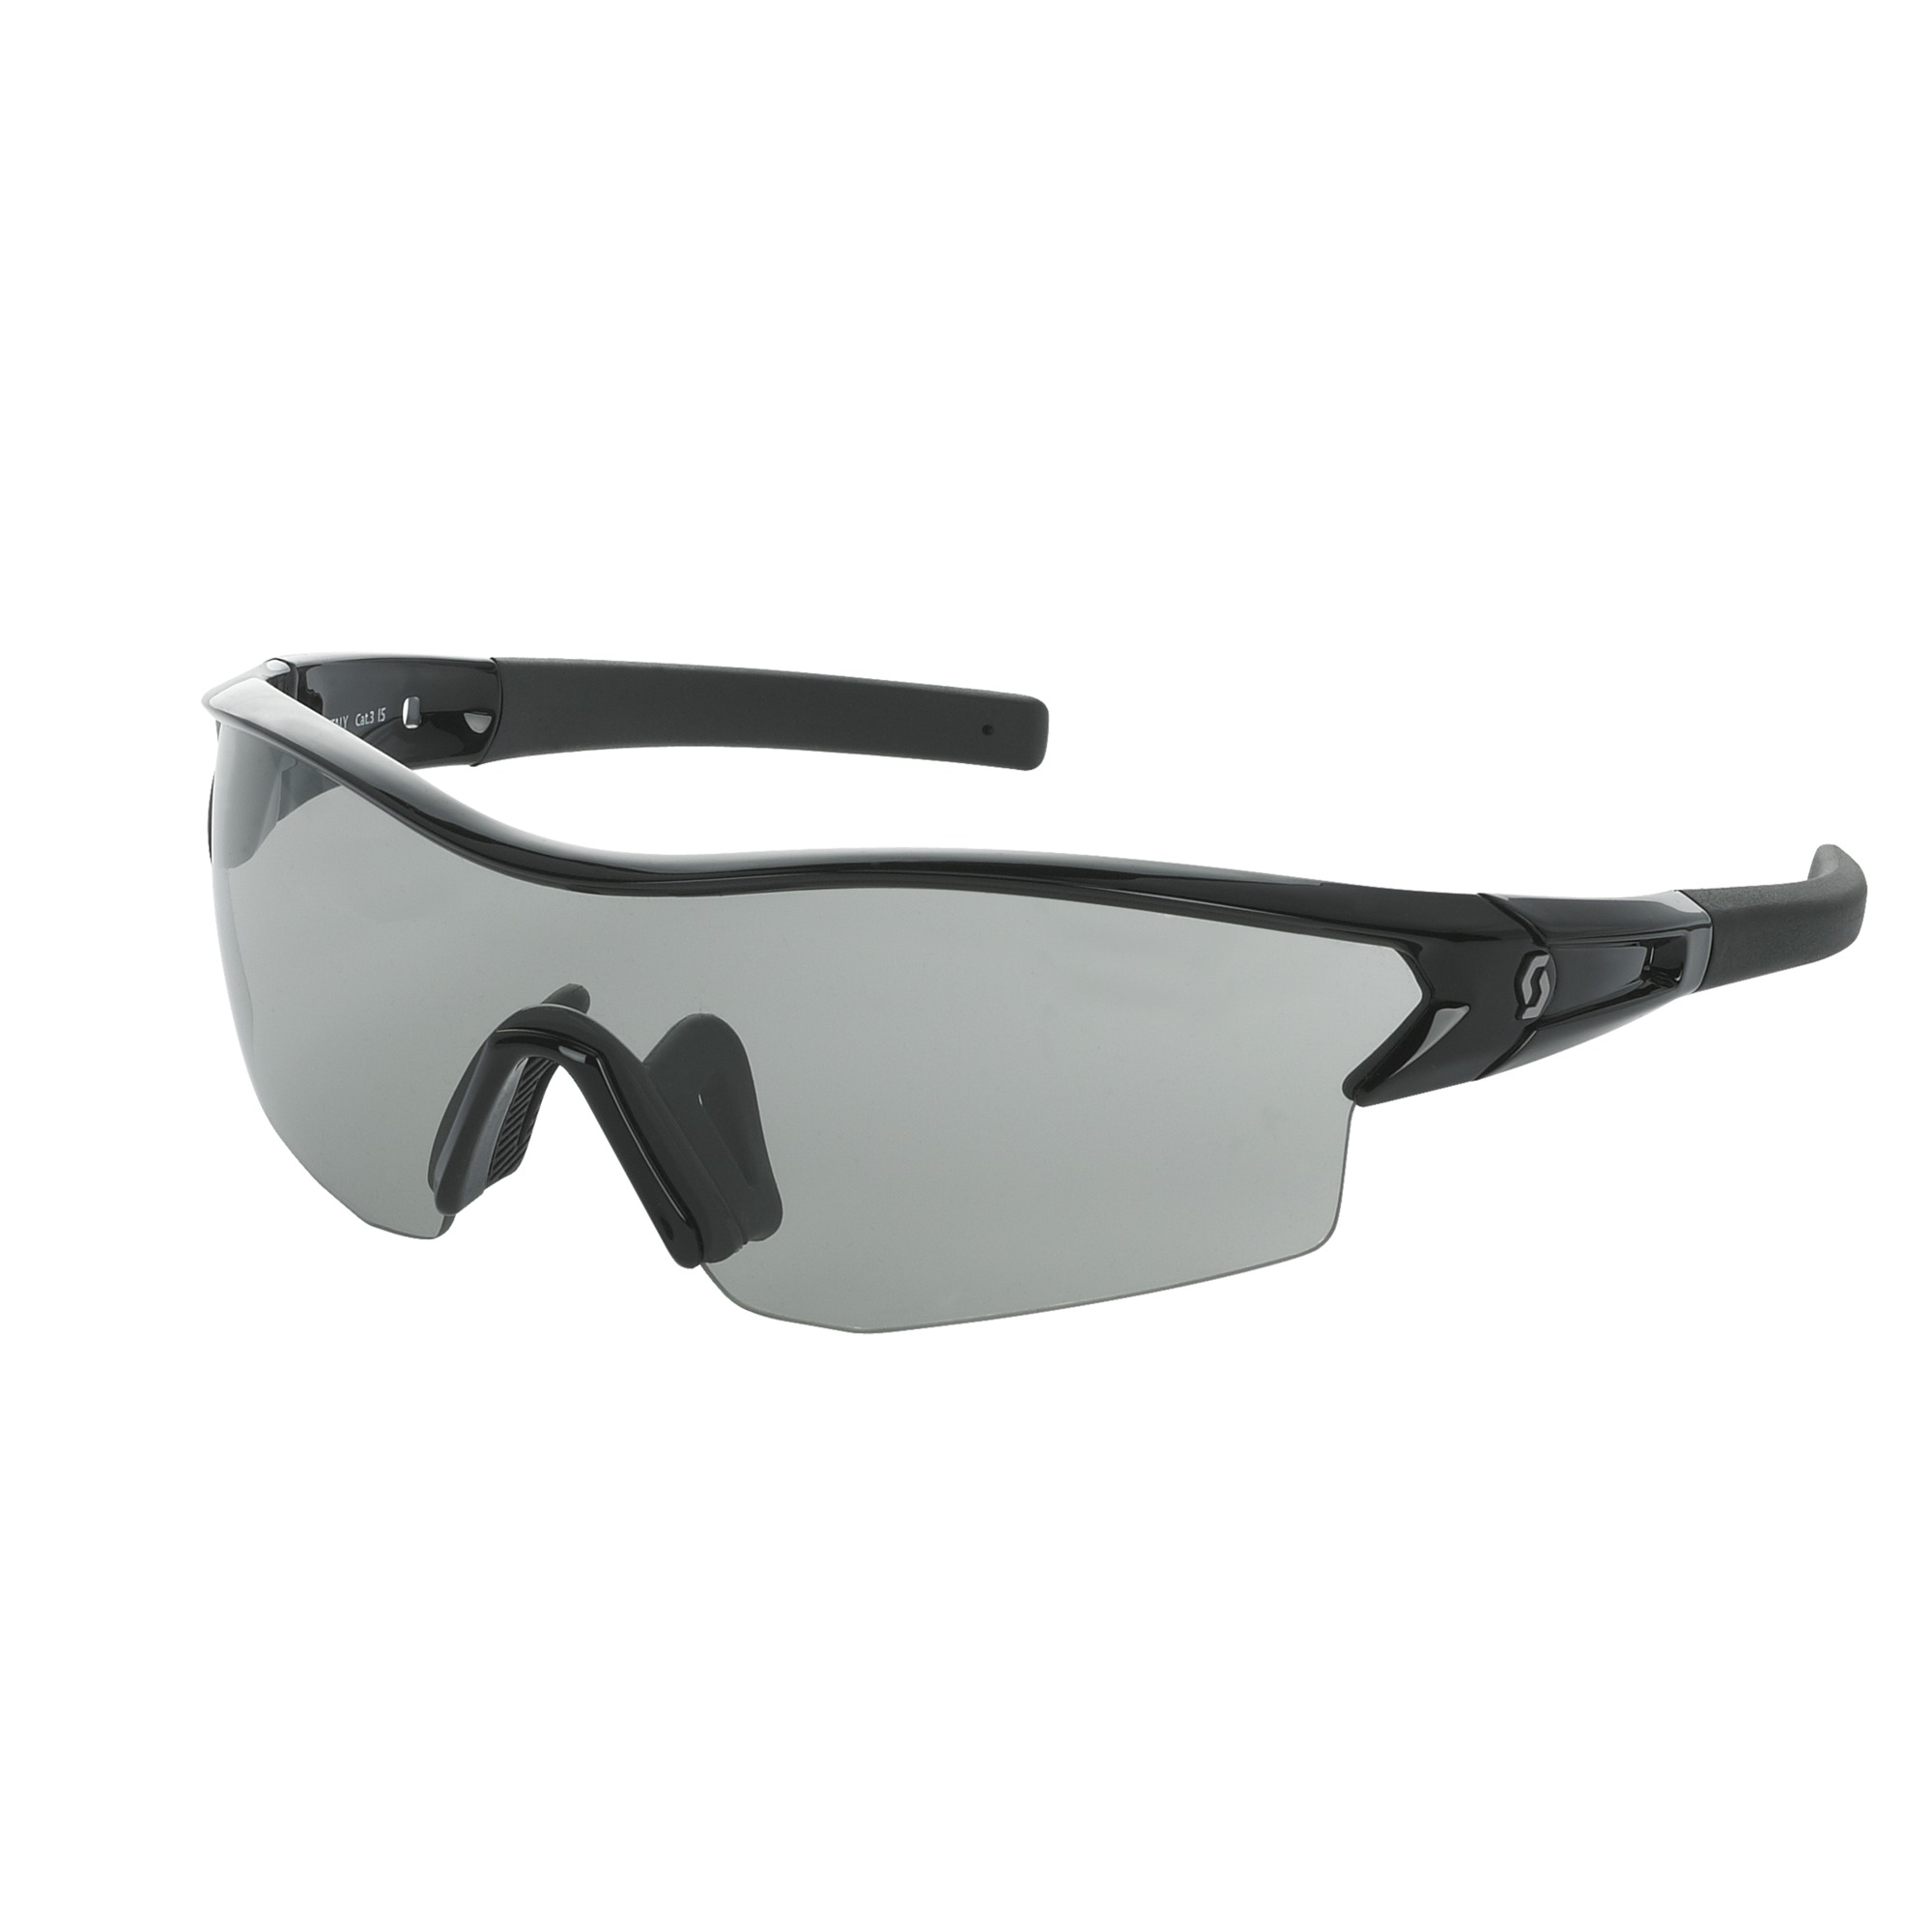 OCCHIALE SPORTIVO SCOTT LEAP SUNGLASSES 238999 BLACK GLOSSY GREY